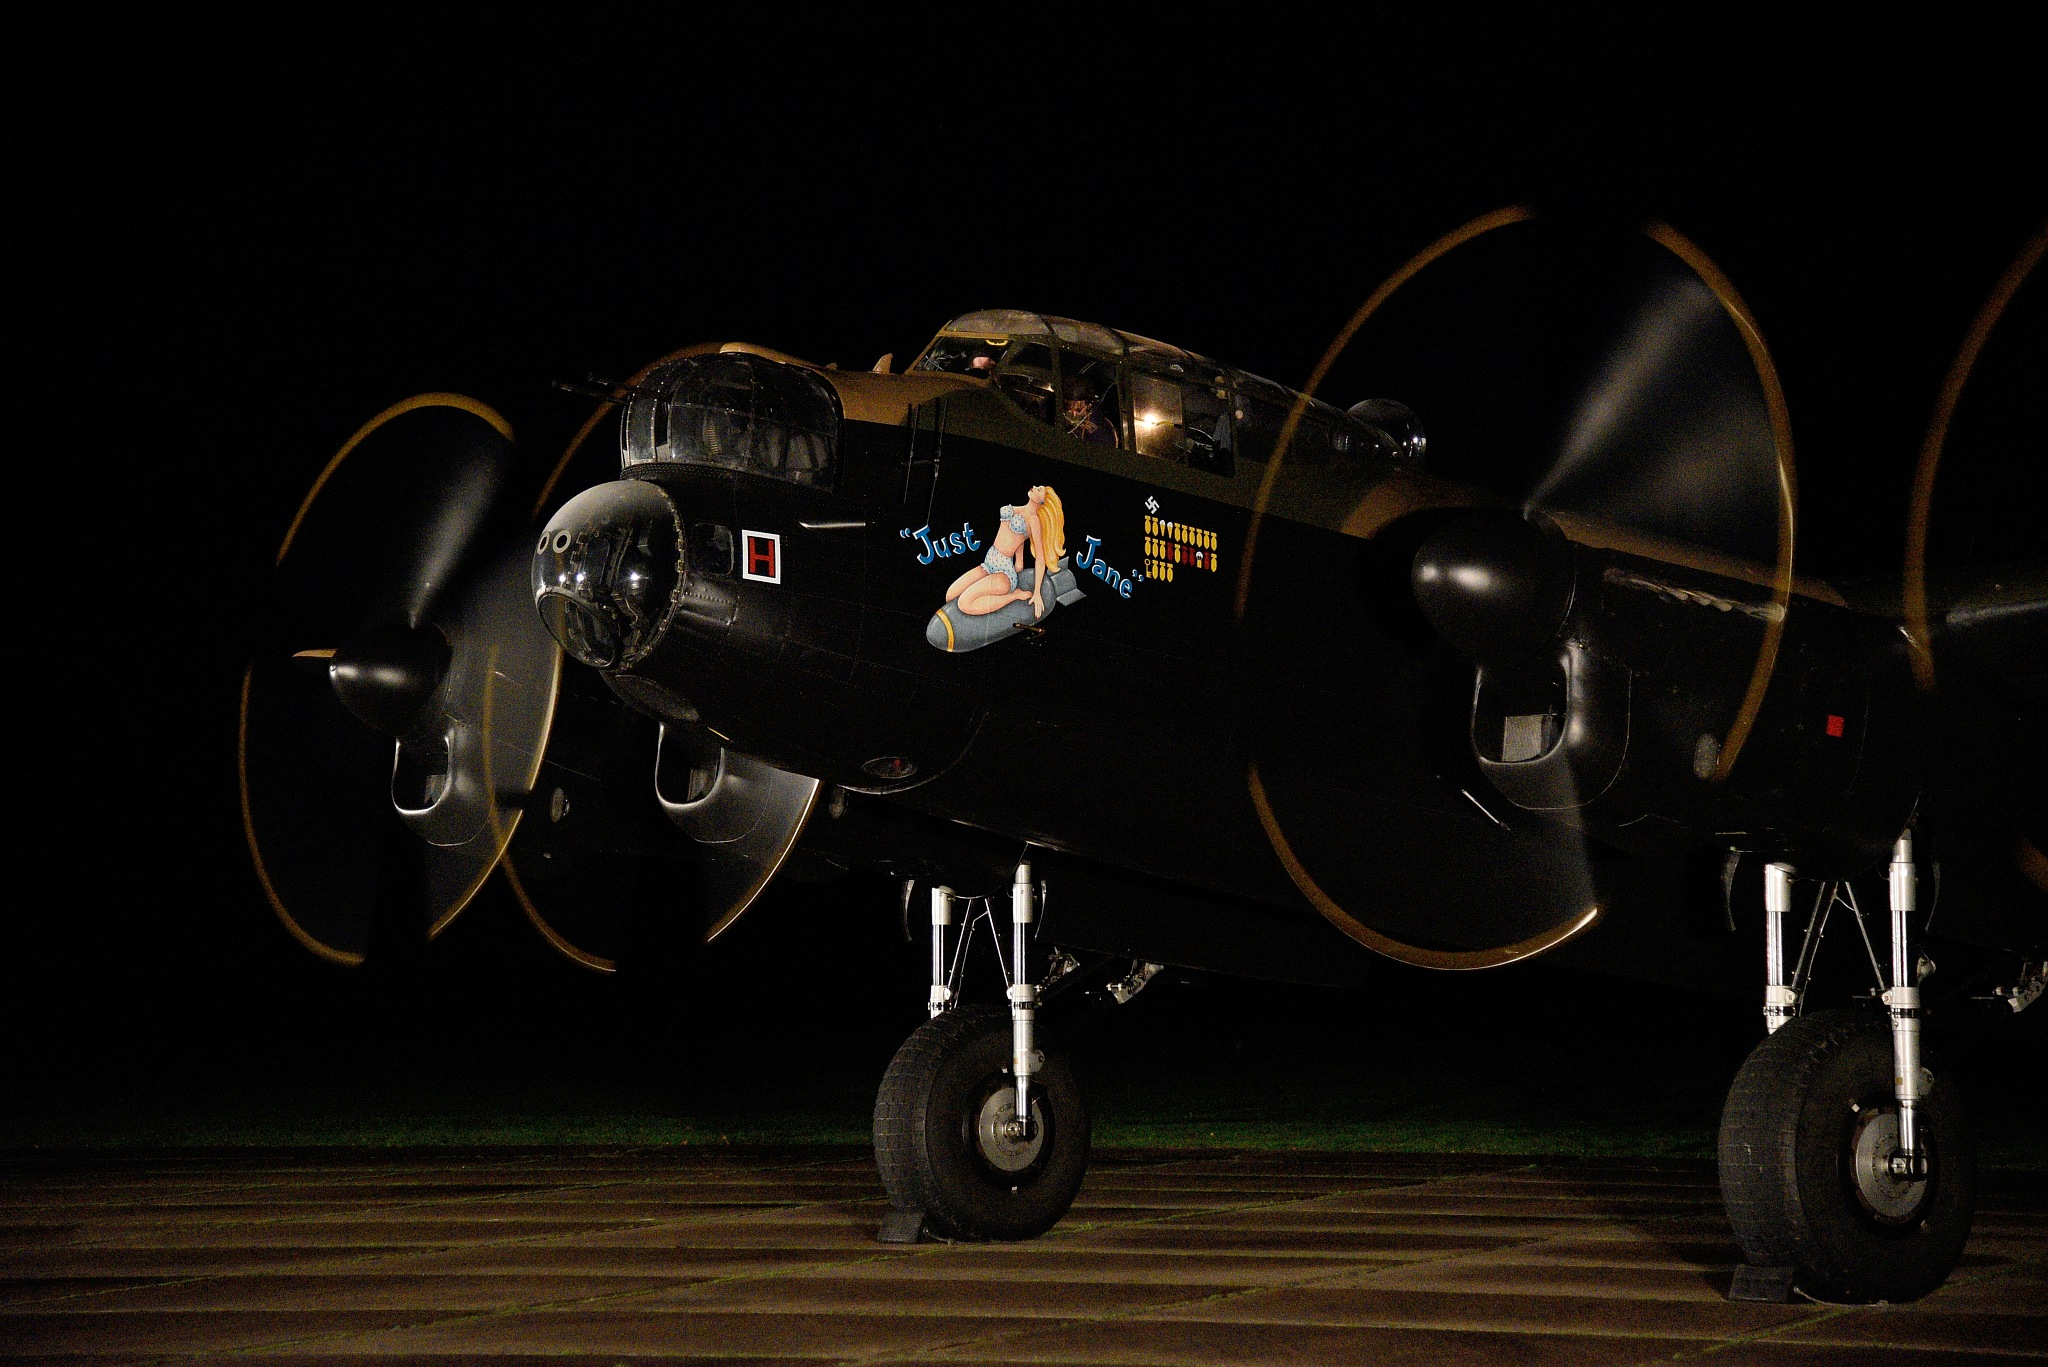 Avro Lancaster NX611 'Just Jane'  by coolcats